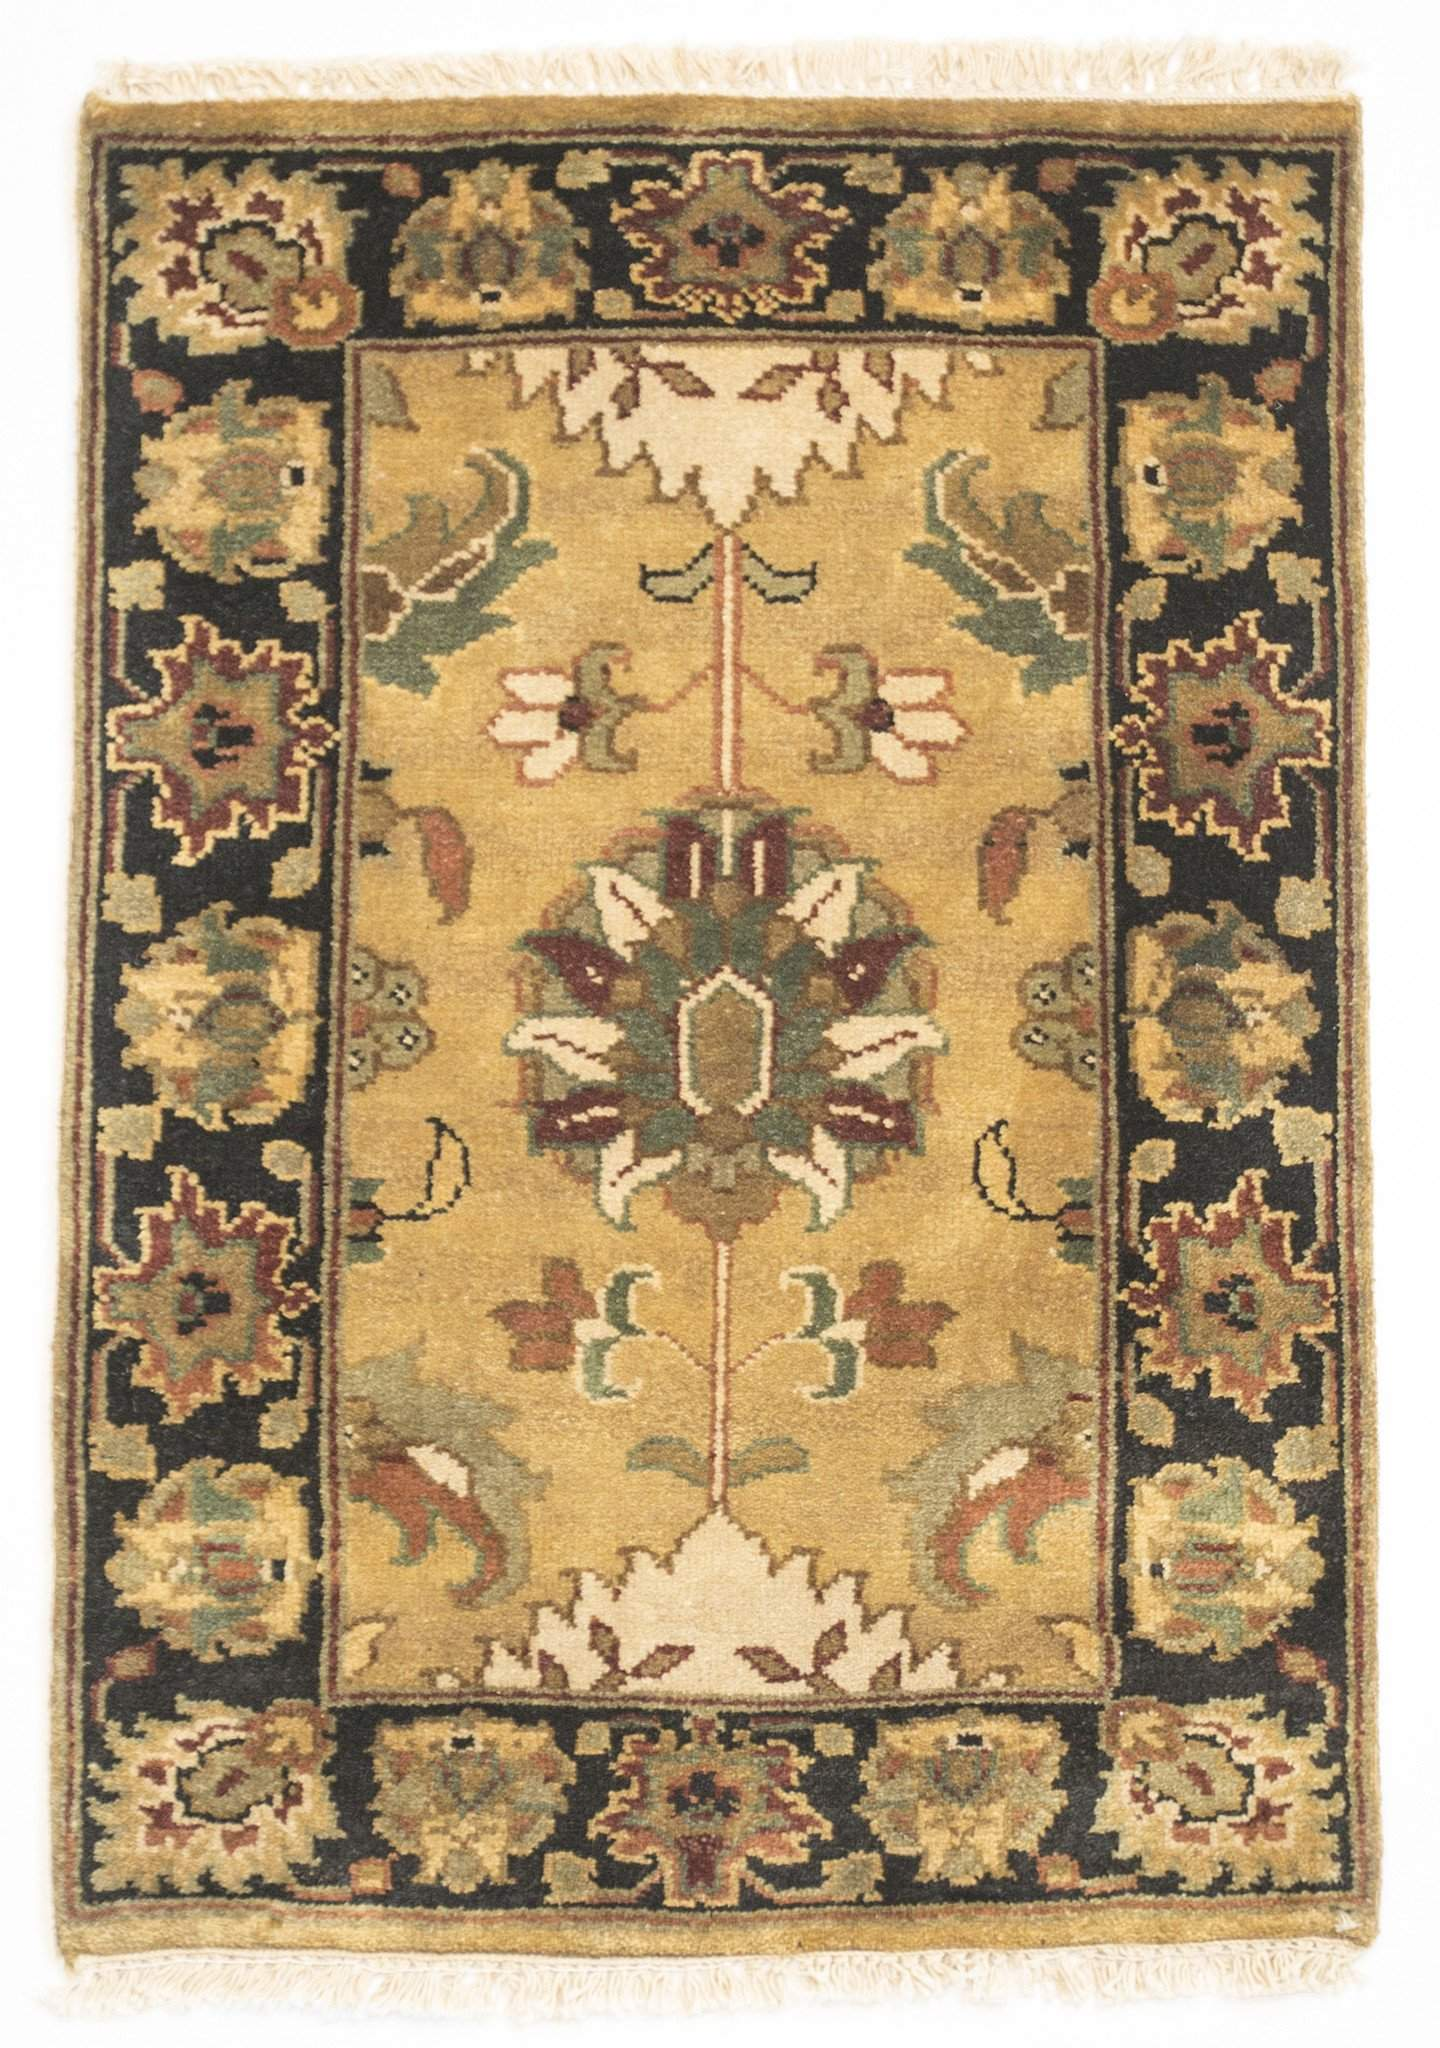 2' x 3' Sultanabad Handknotted Traditional Wool Rug by Rug Shop and More Area Rugs